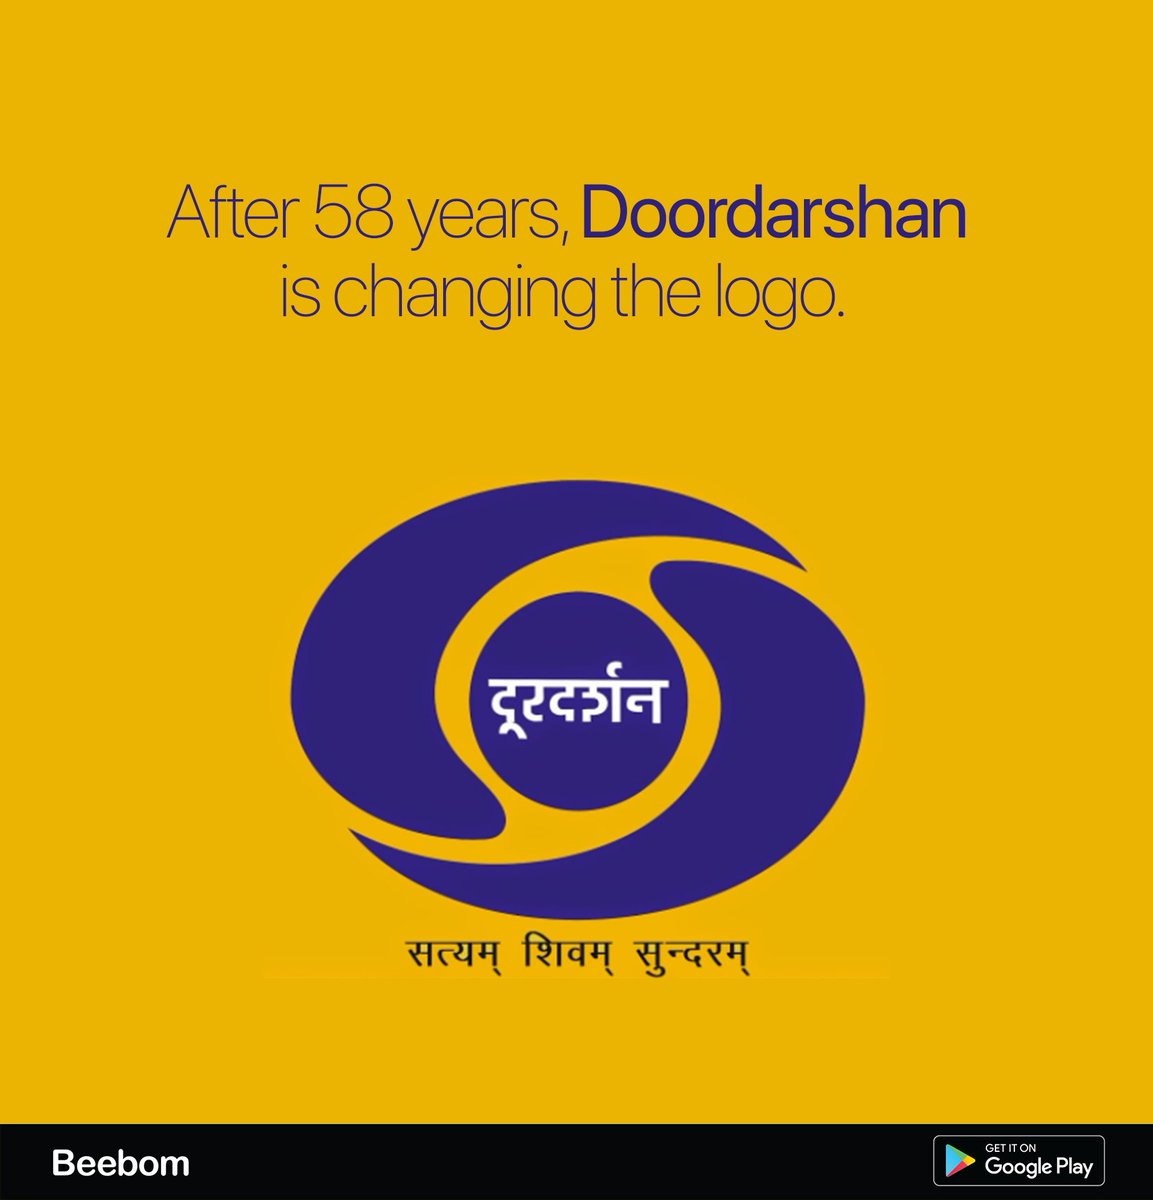 #Doordarshan has decided to change its iconic logo! DD has also launched a design contest and is calling for public entries now! pic.twitter.com/XUgItmNwjh